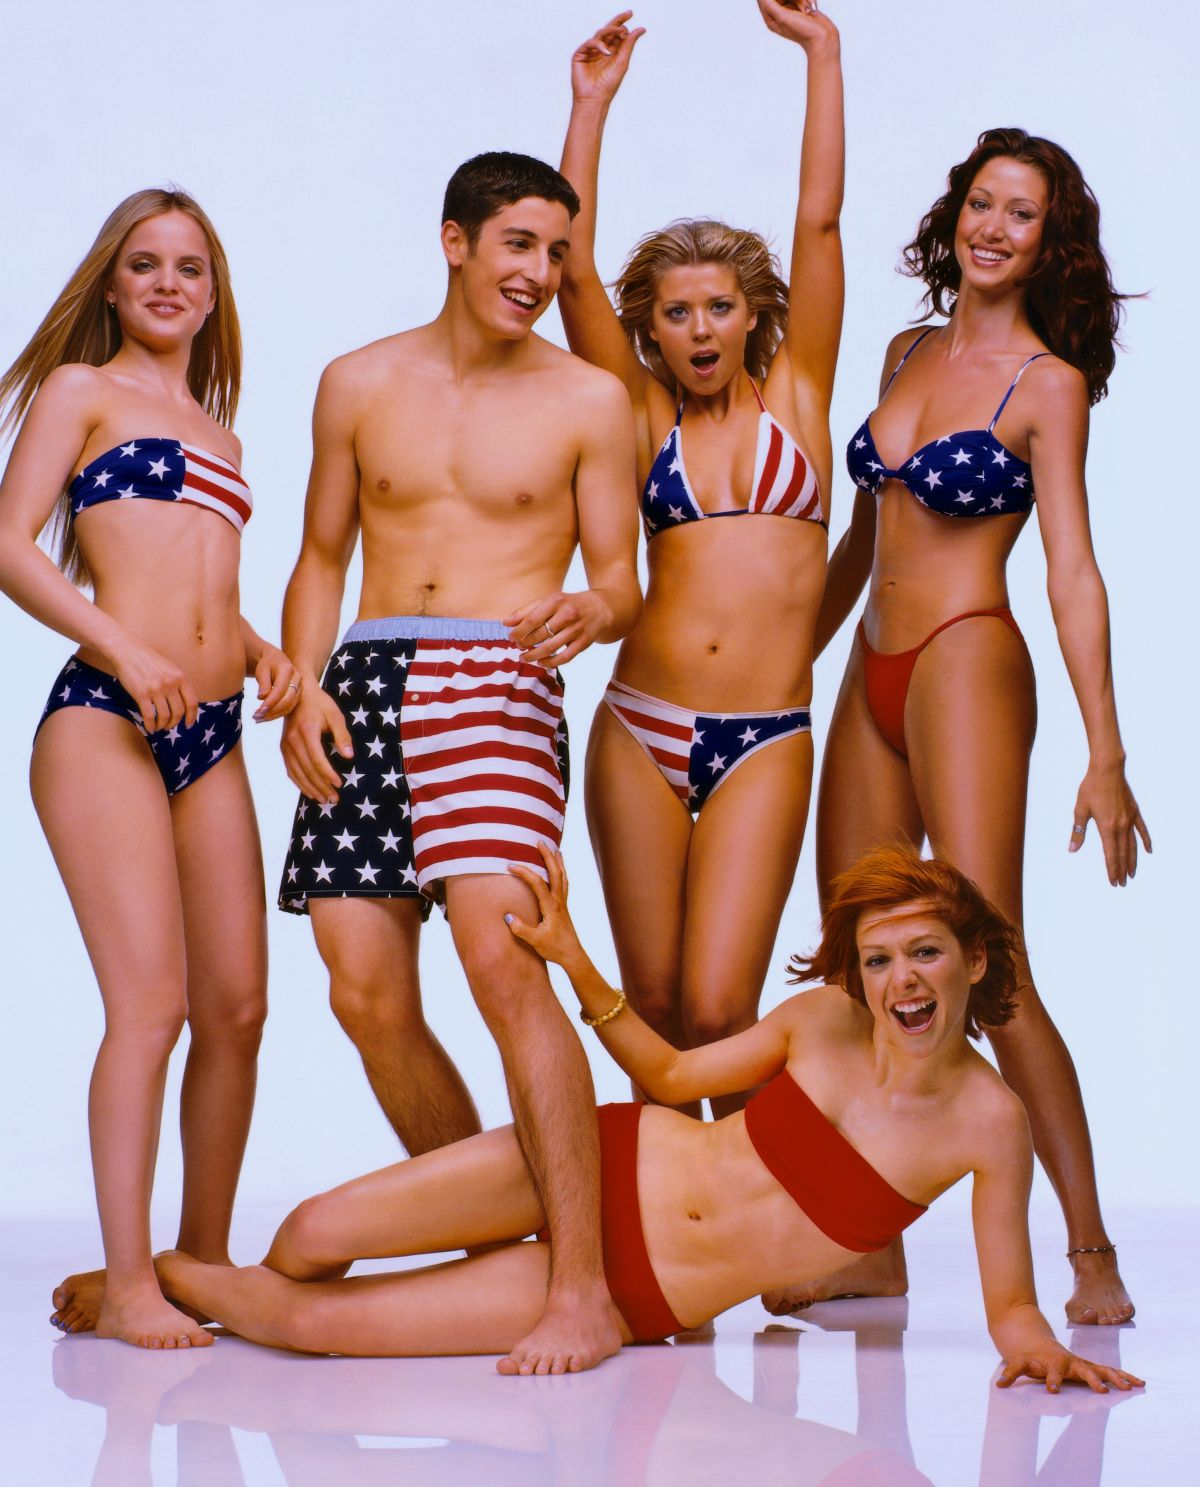 Mtv never should have pulled the plug on its show about losing virginity, my first